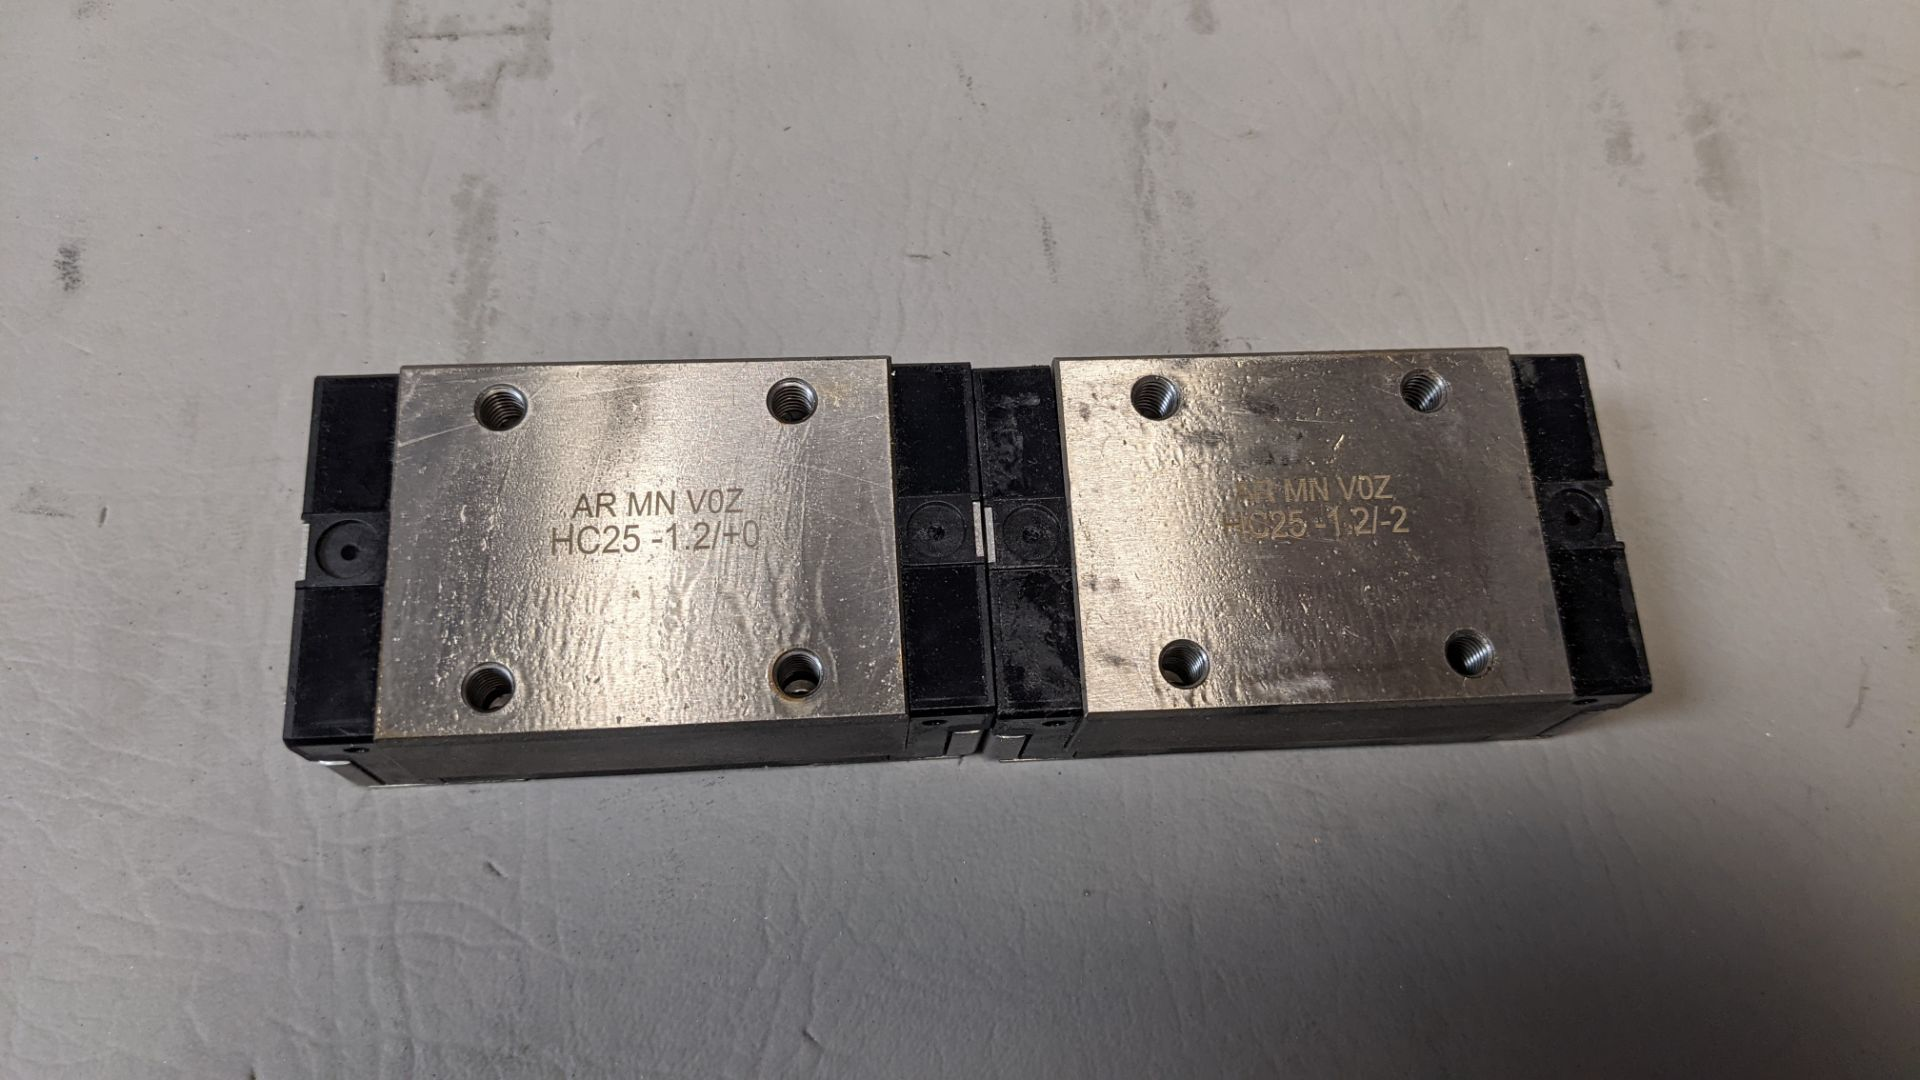 2 LINEAR RAIL BEARING CARRIAGES